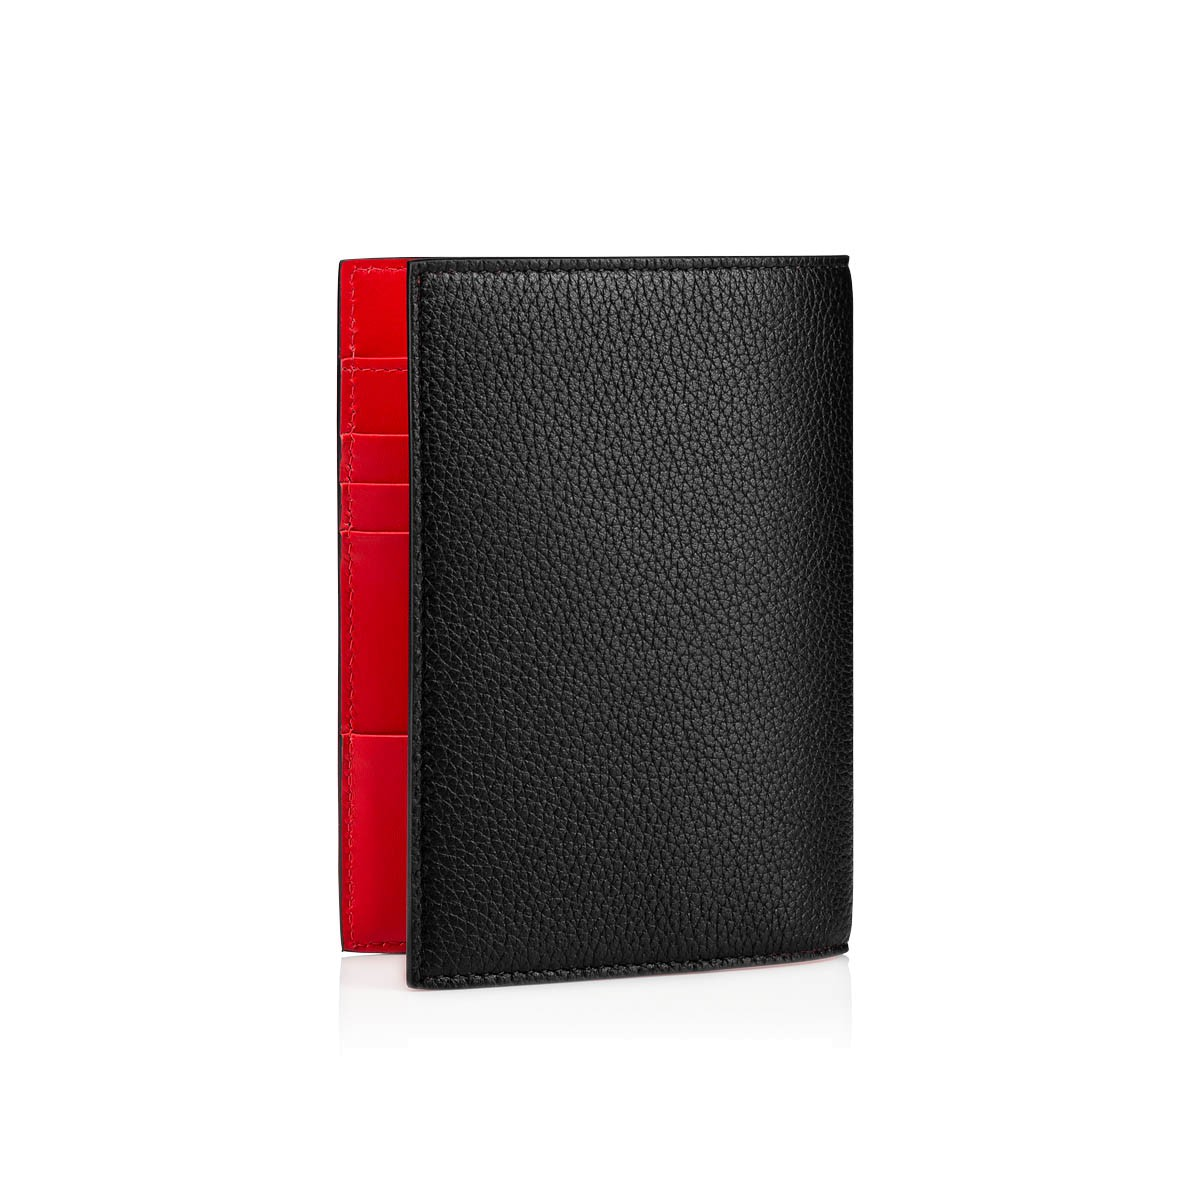 スモールレザーグッズ - Loubipass Passport Holder - Christian Louboutin